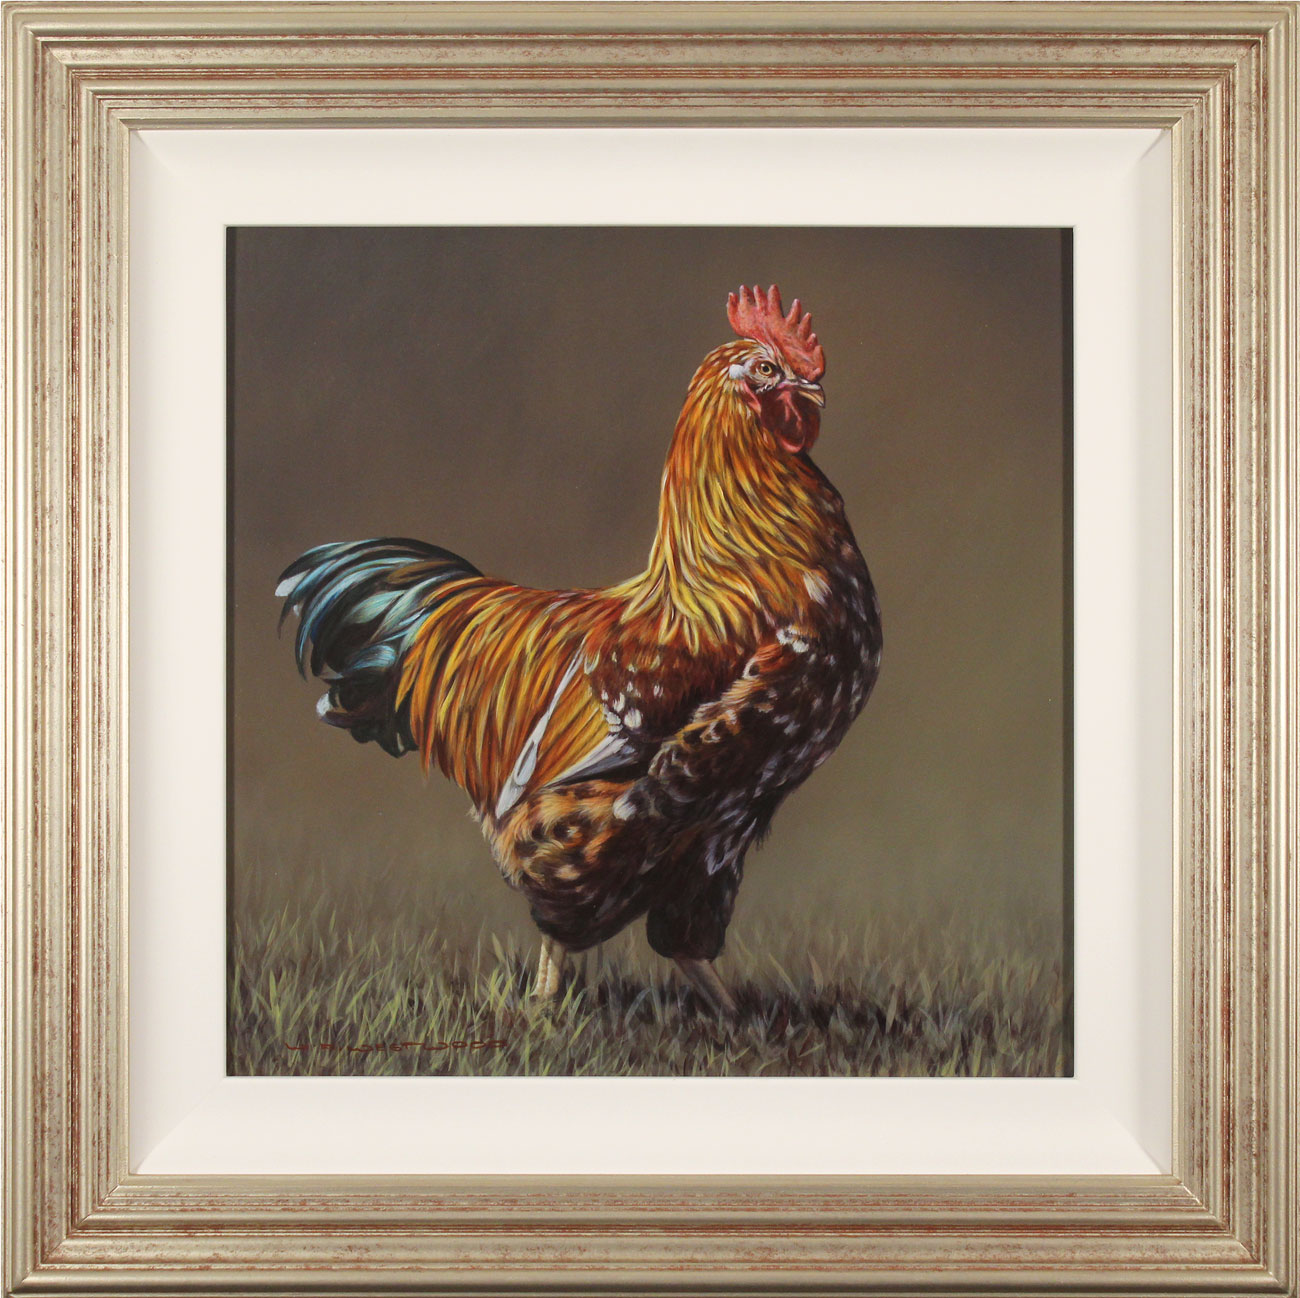 Wayne Westwood, Original oil painting on panel, The Cockerel, click to enlarge